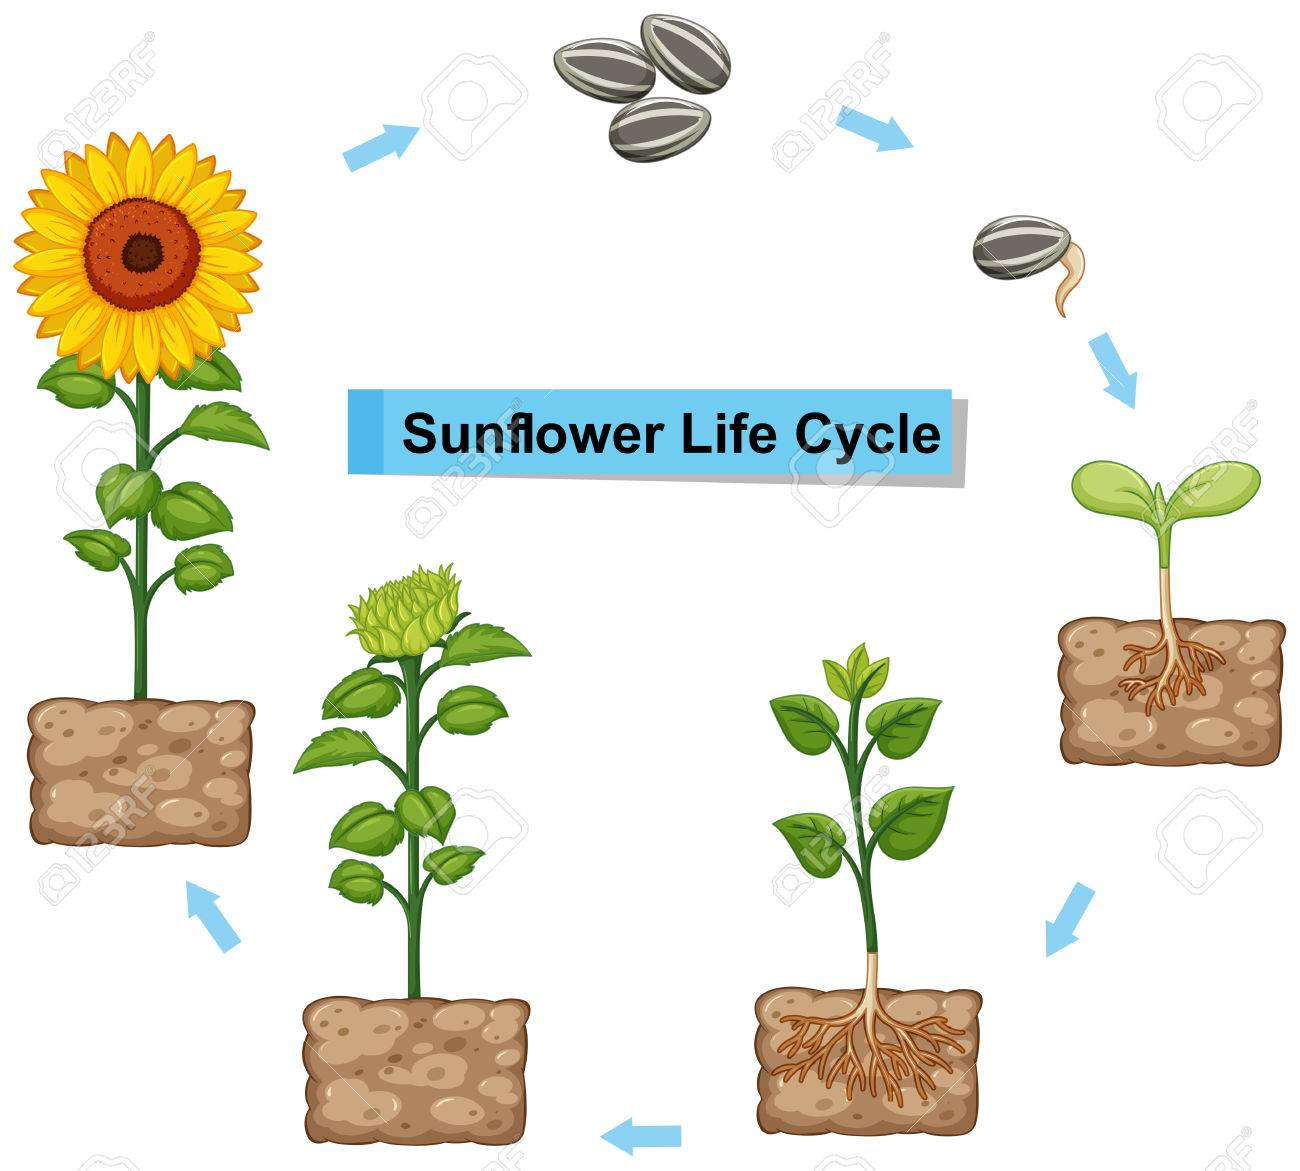 hight resolution of diagram showing life cycle of sunflower illustration stock vector 85245663